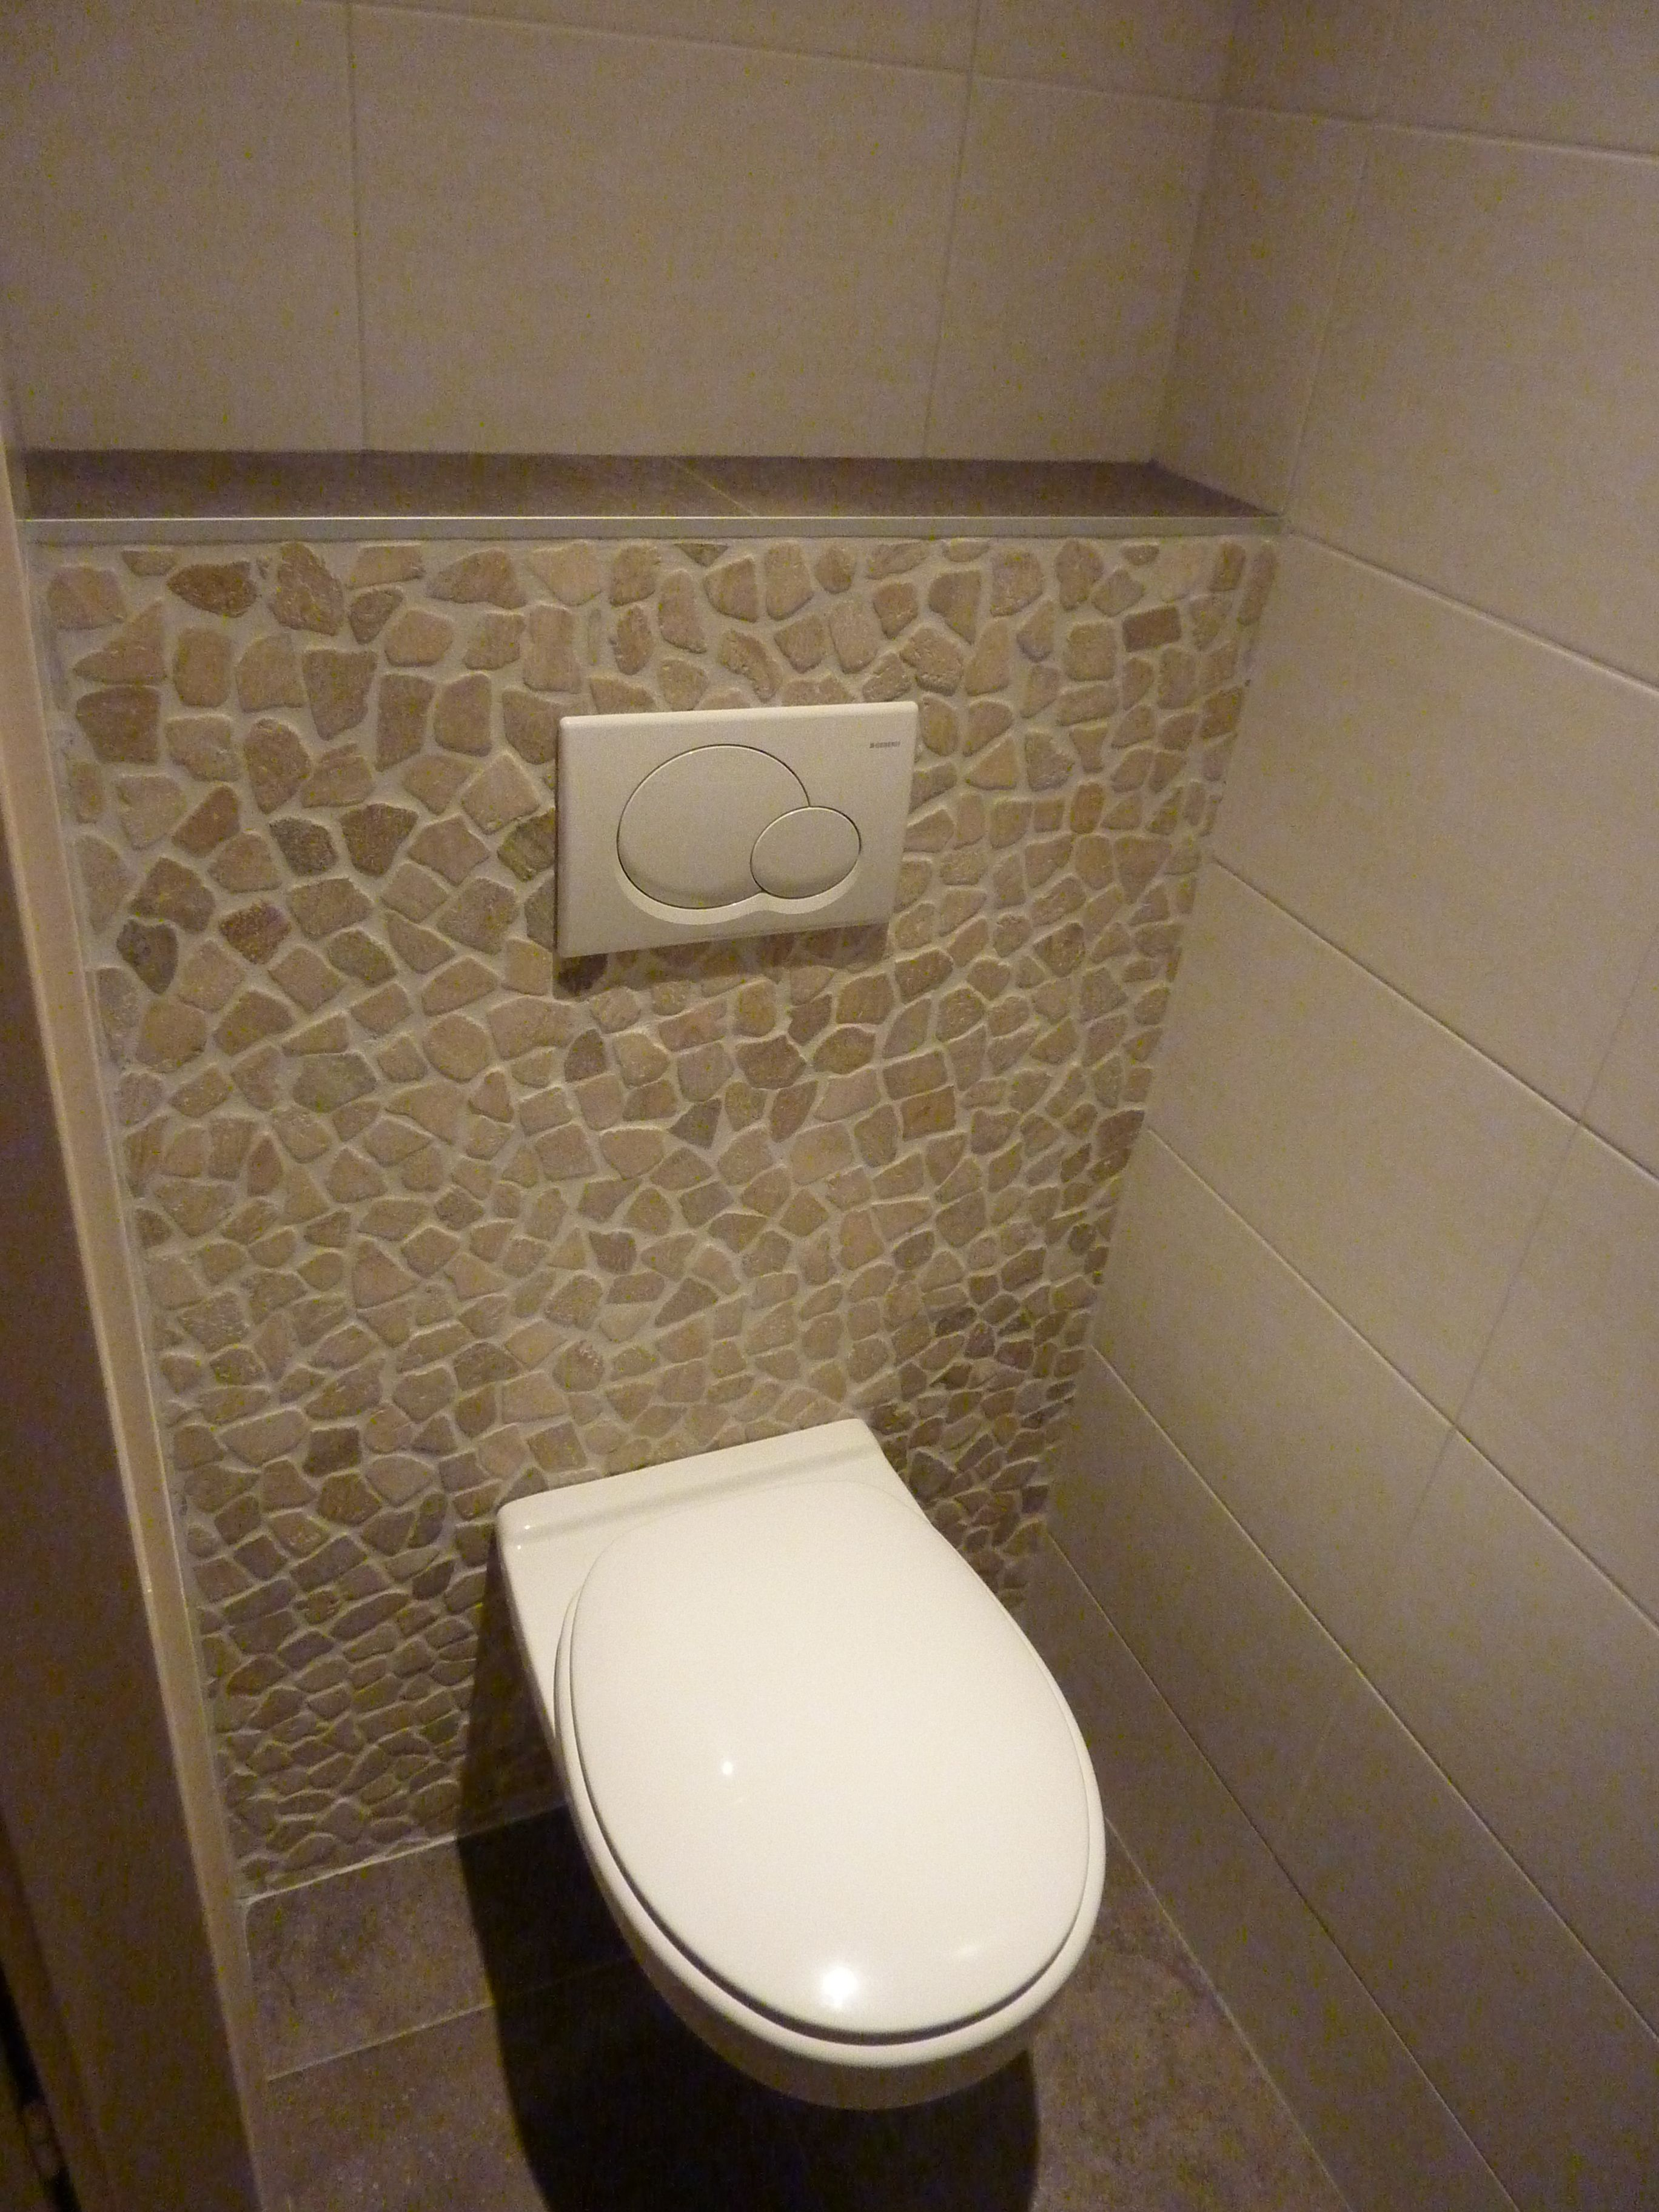 Toilet grote tegels google zoeken home toiletroom pinterest toilets and van - Tegels wc design ...